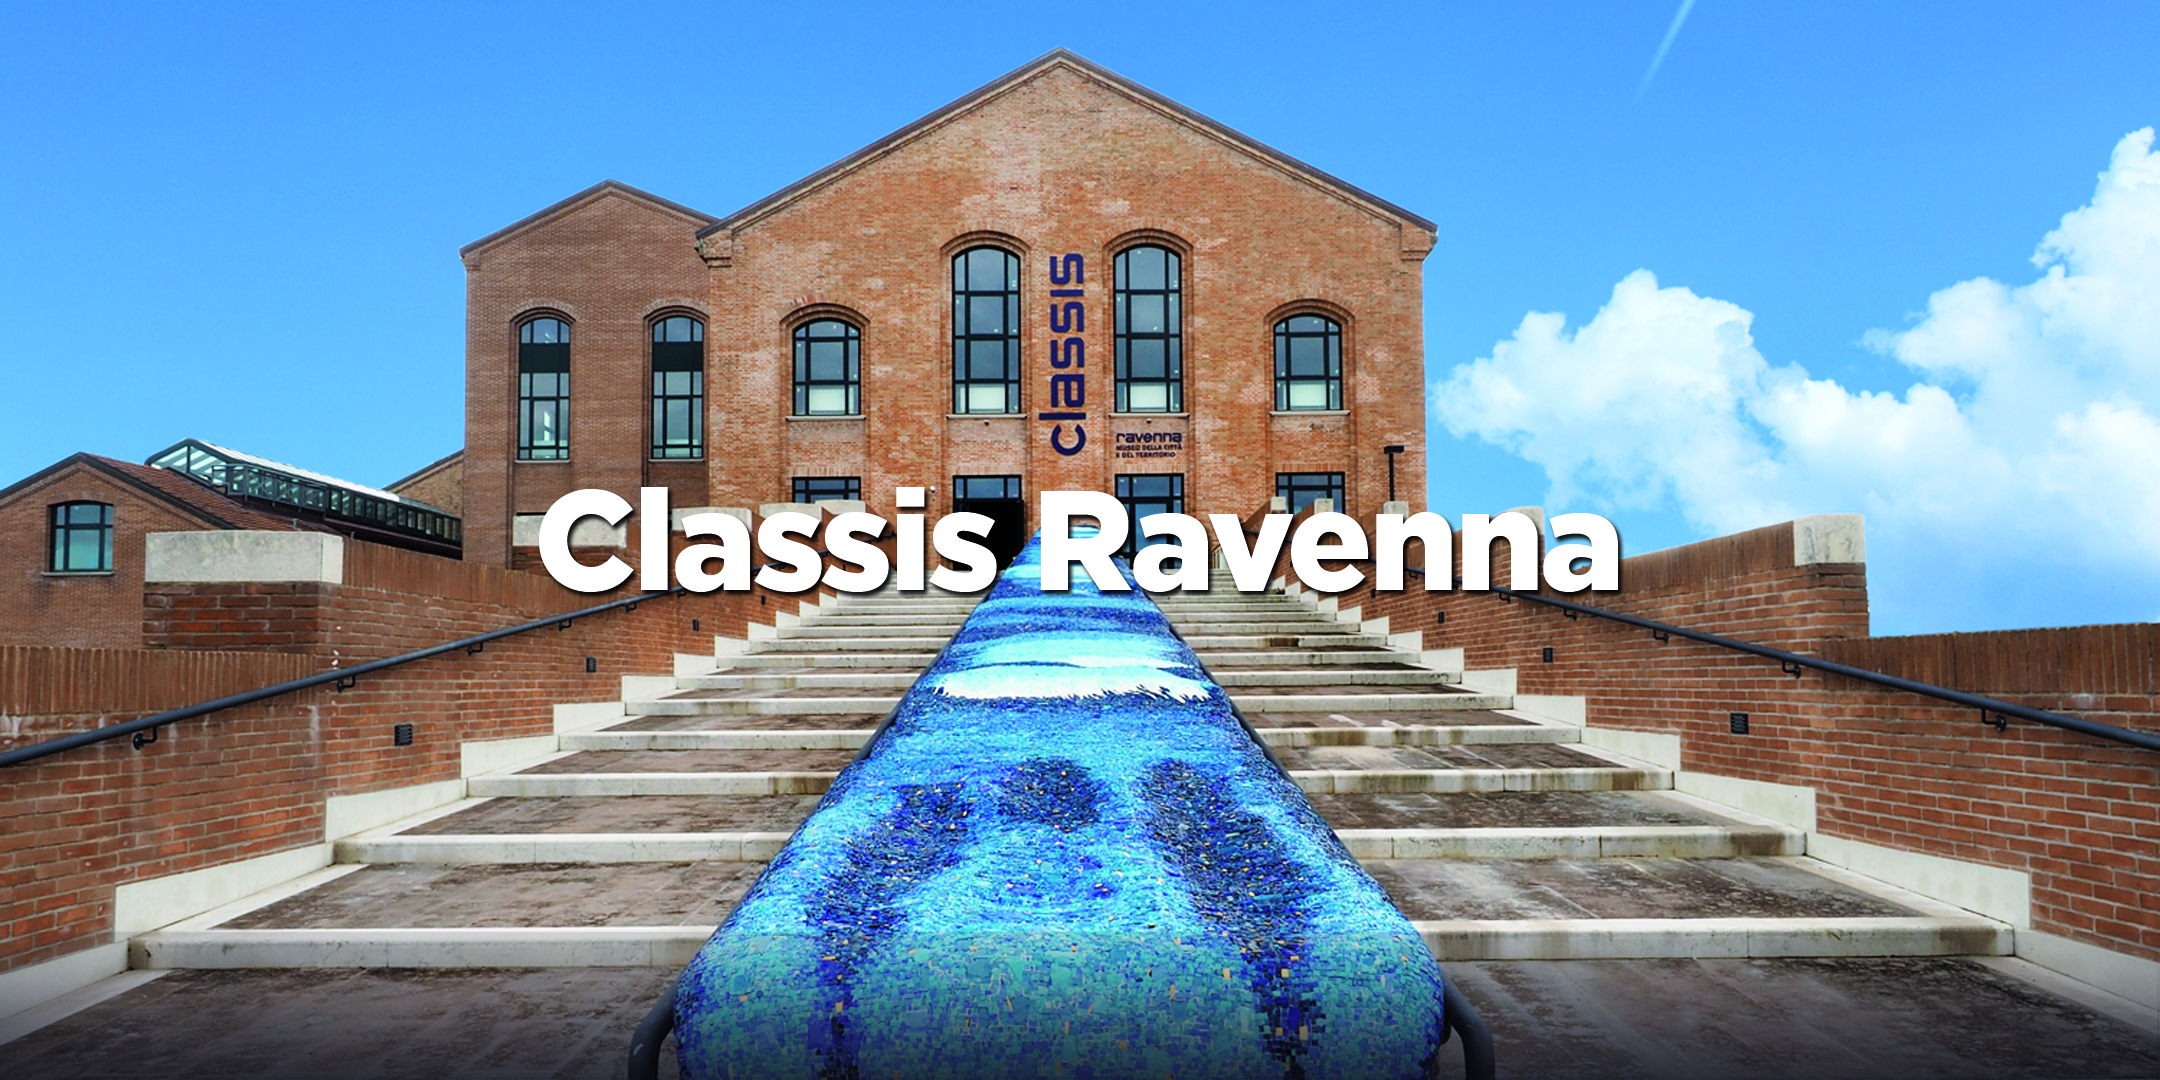 Classis: a New Archaeological Museum For Ravenna